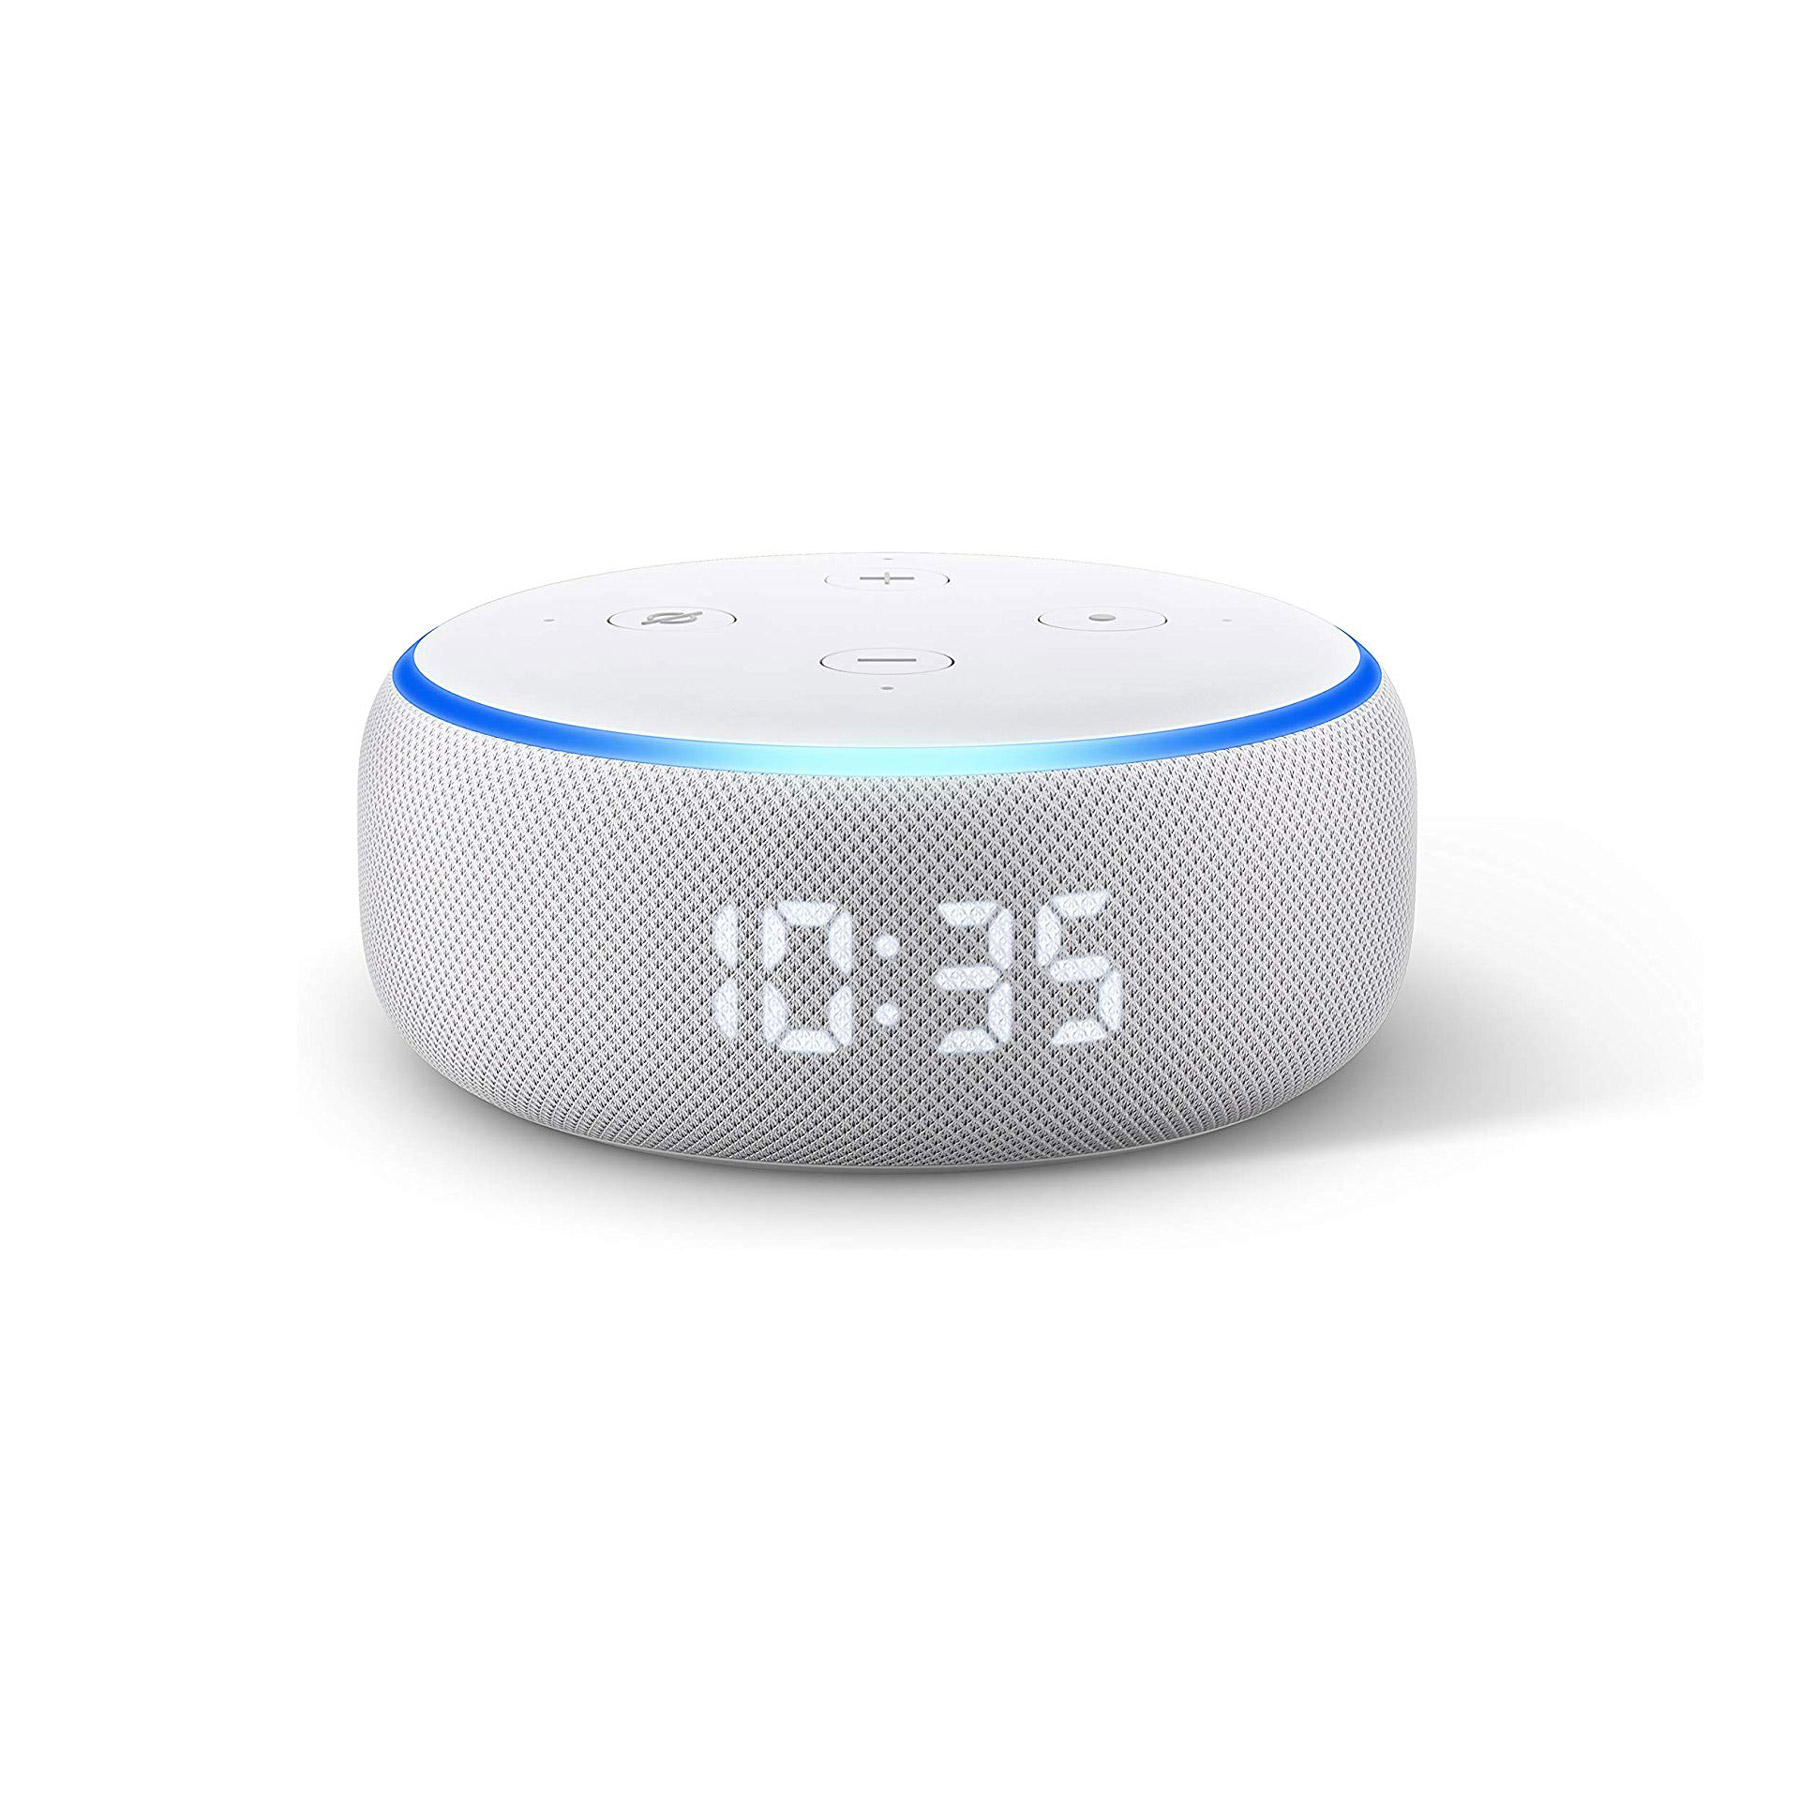 Gift ideas for dad – Echo Dot with Clock (3rd Generation)